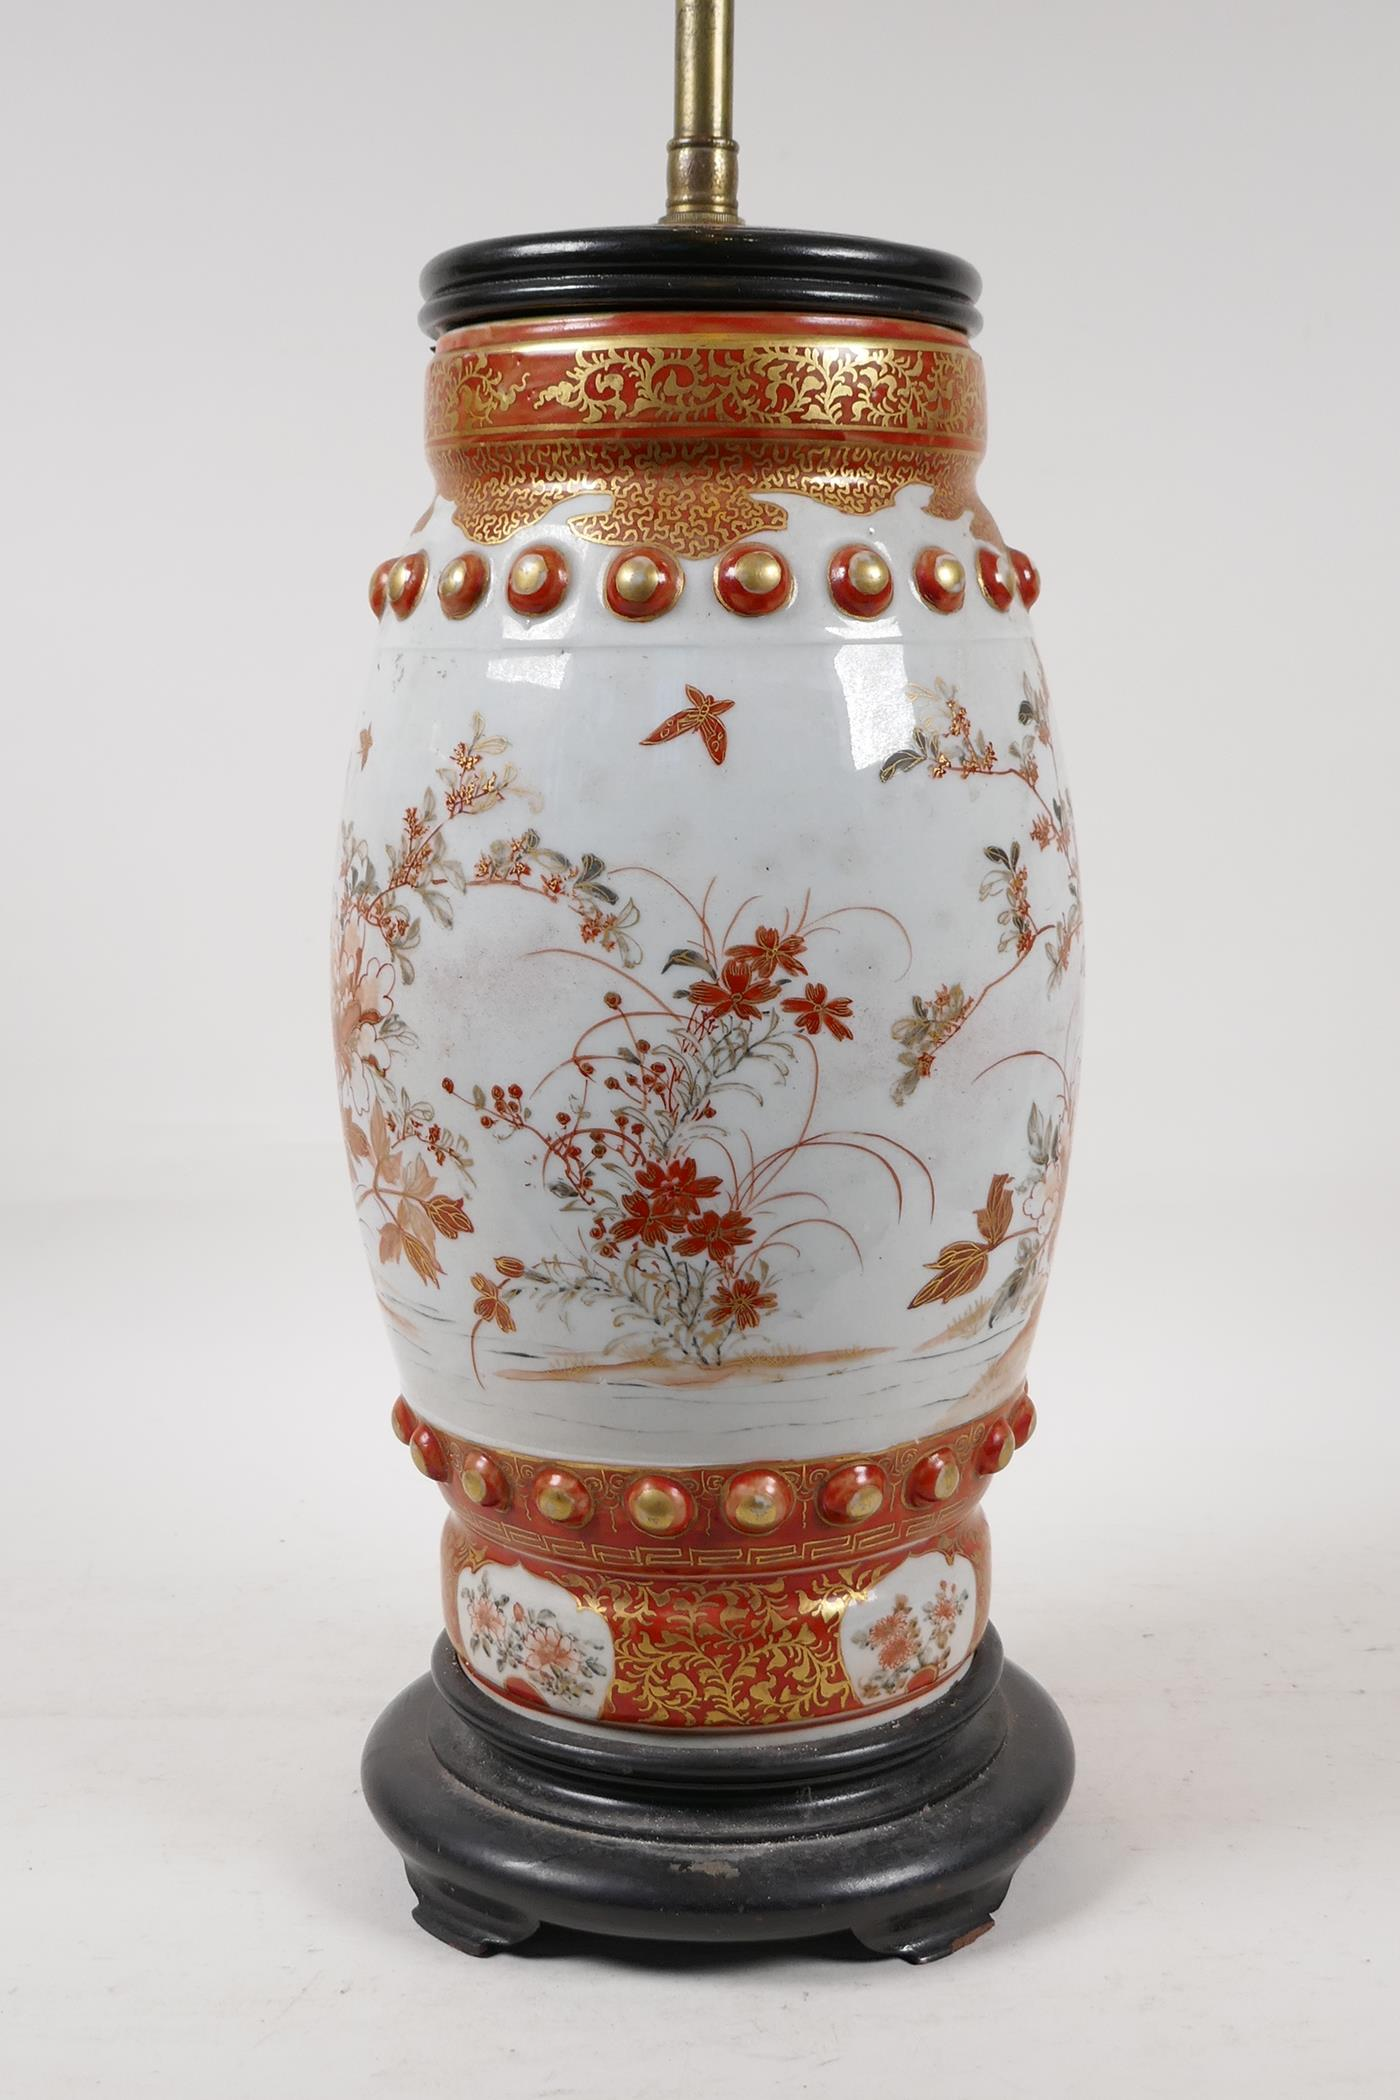 A Japanese Meiji period satsuma pottery vase decorated with flowers and butterflies, converted to